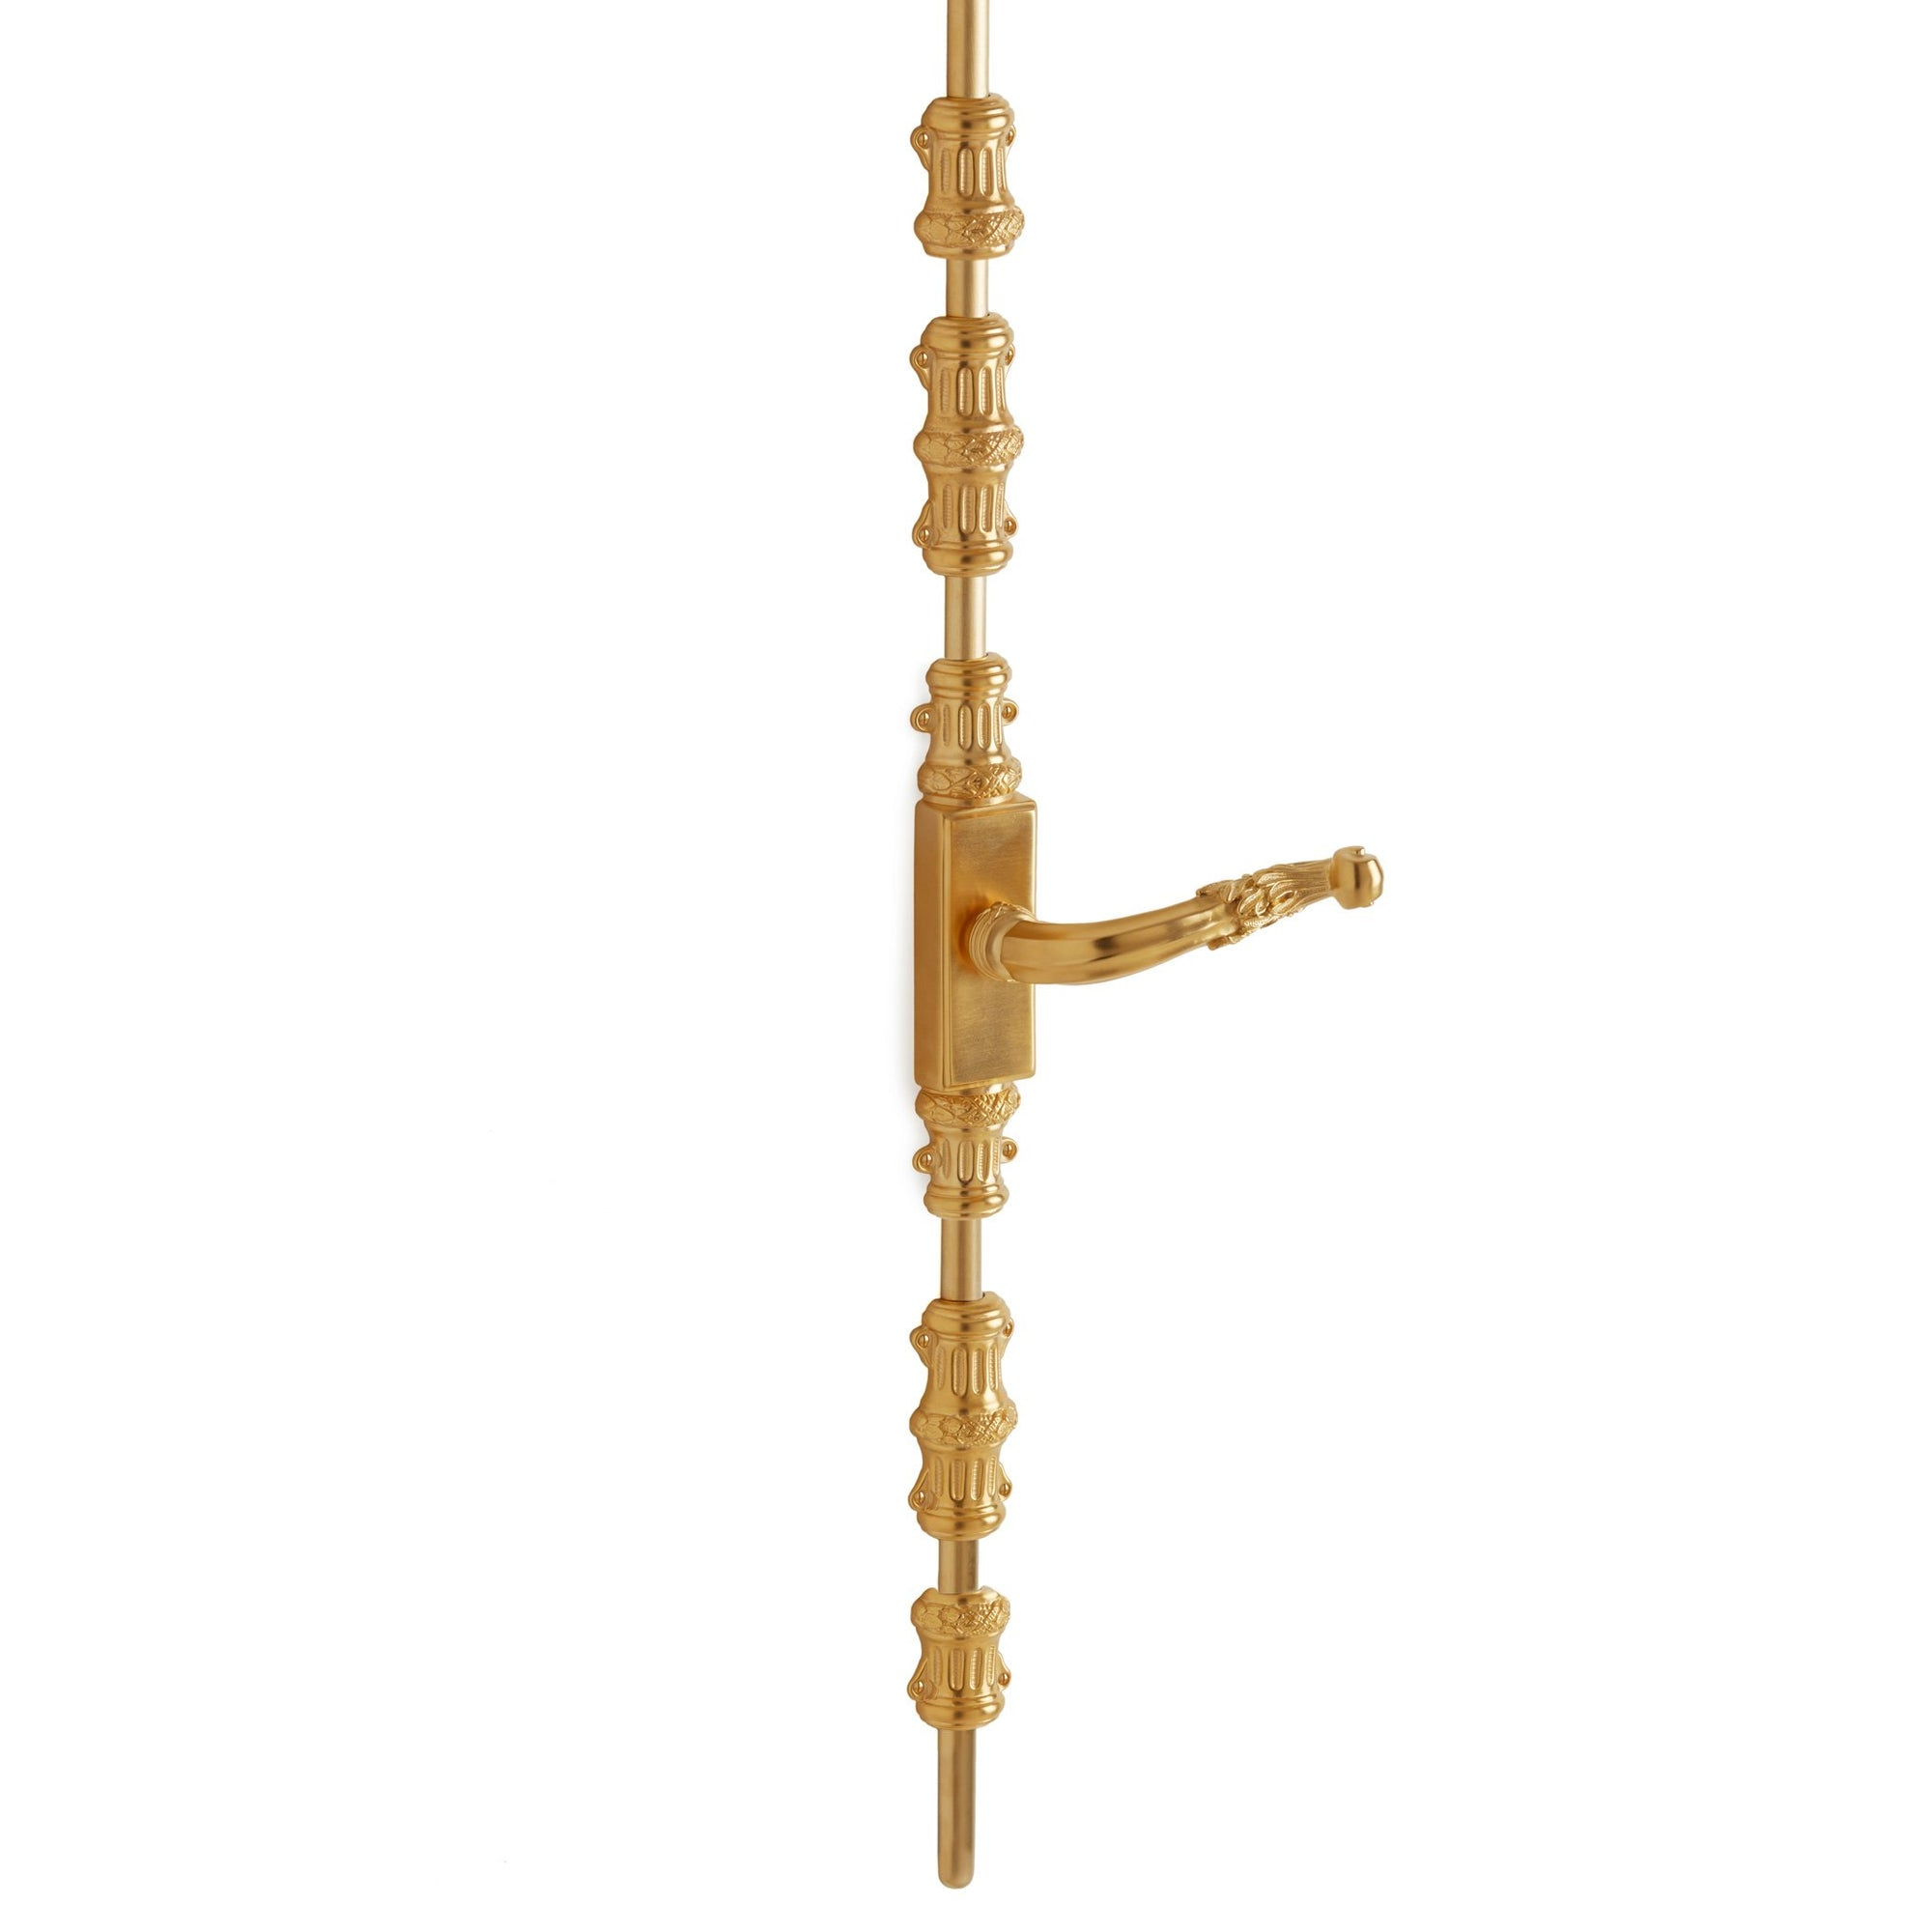 2921-1055DOR-RH-GP Sherle Wagner International Cremone Bolt with Ribbon & Reed Door Lever in Gold Plate metal finish